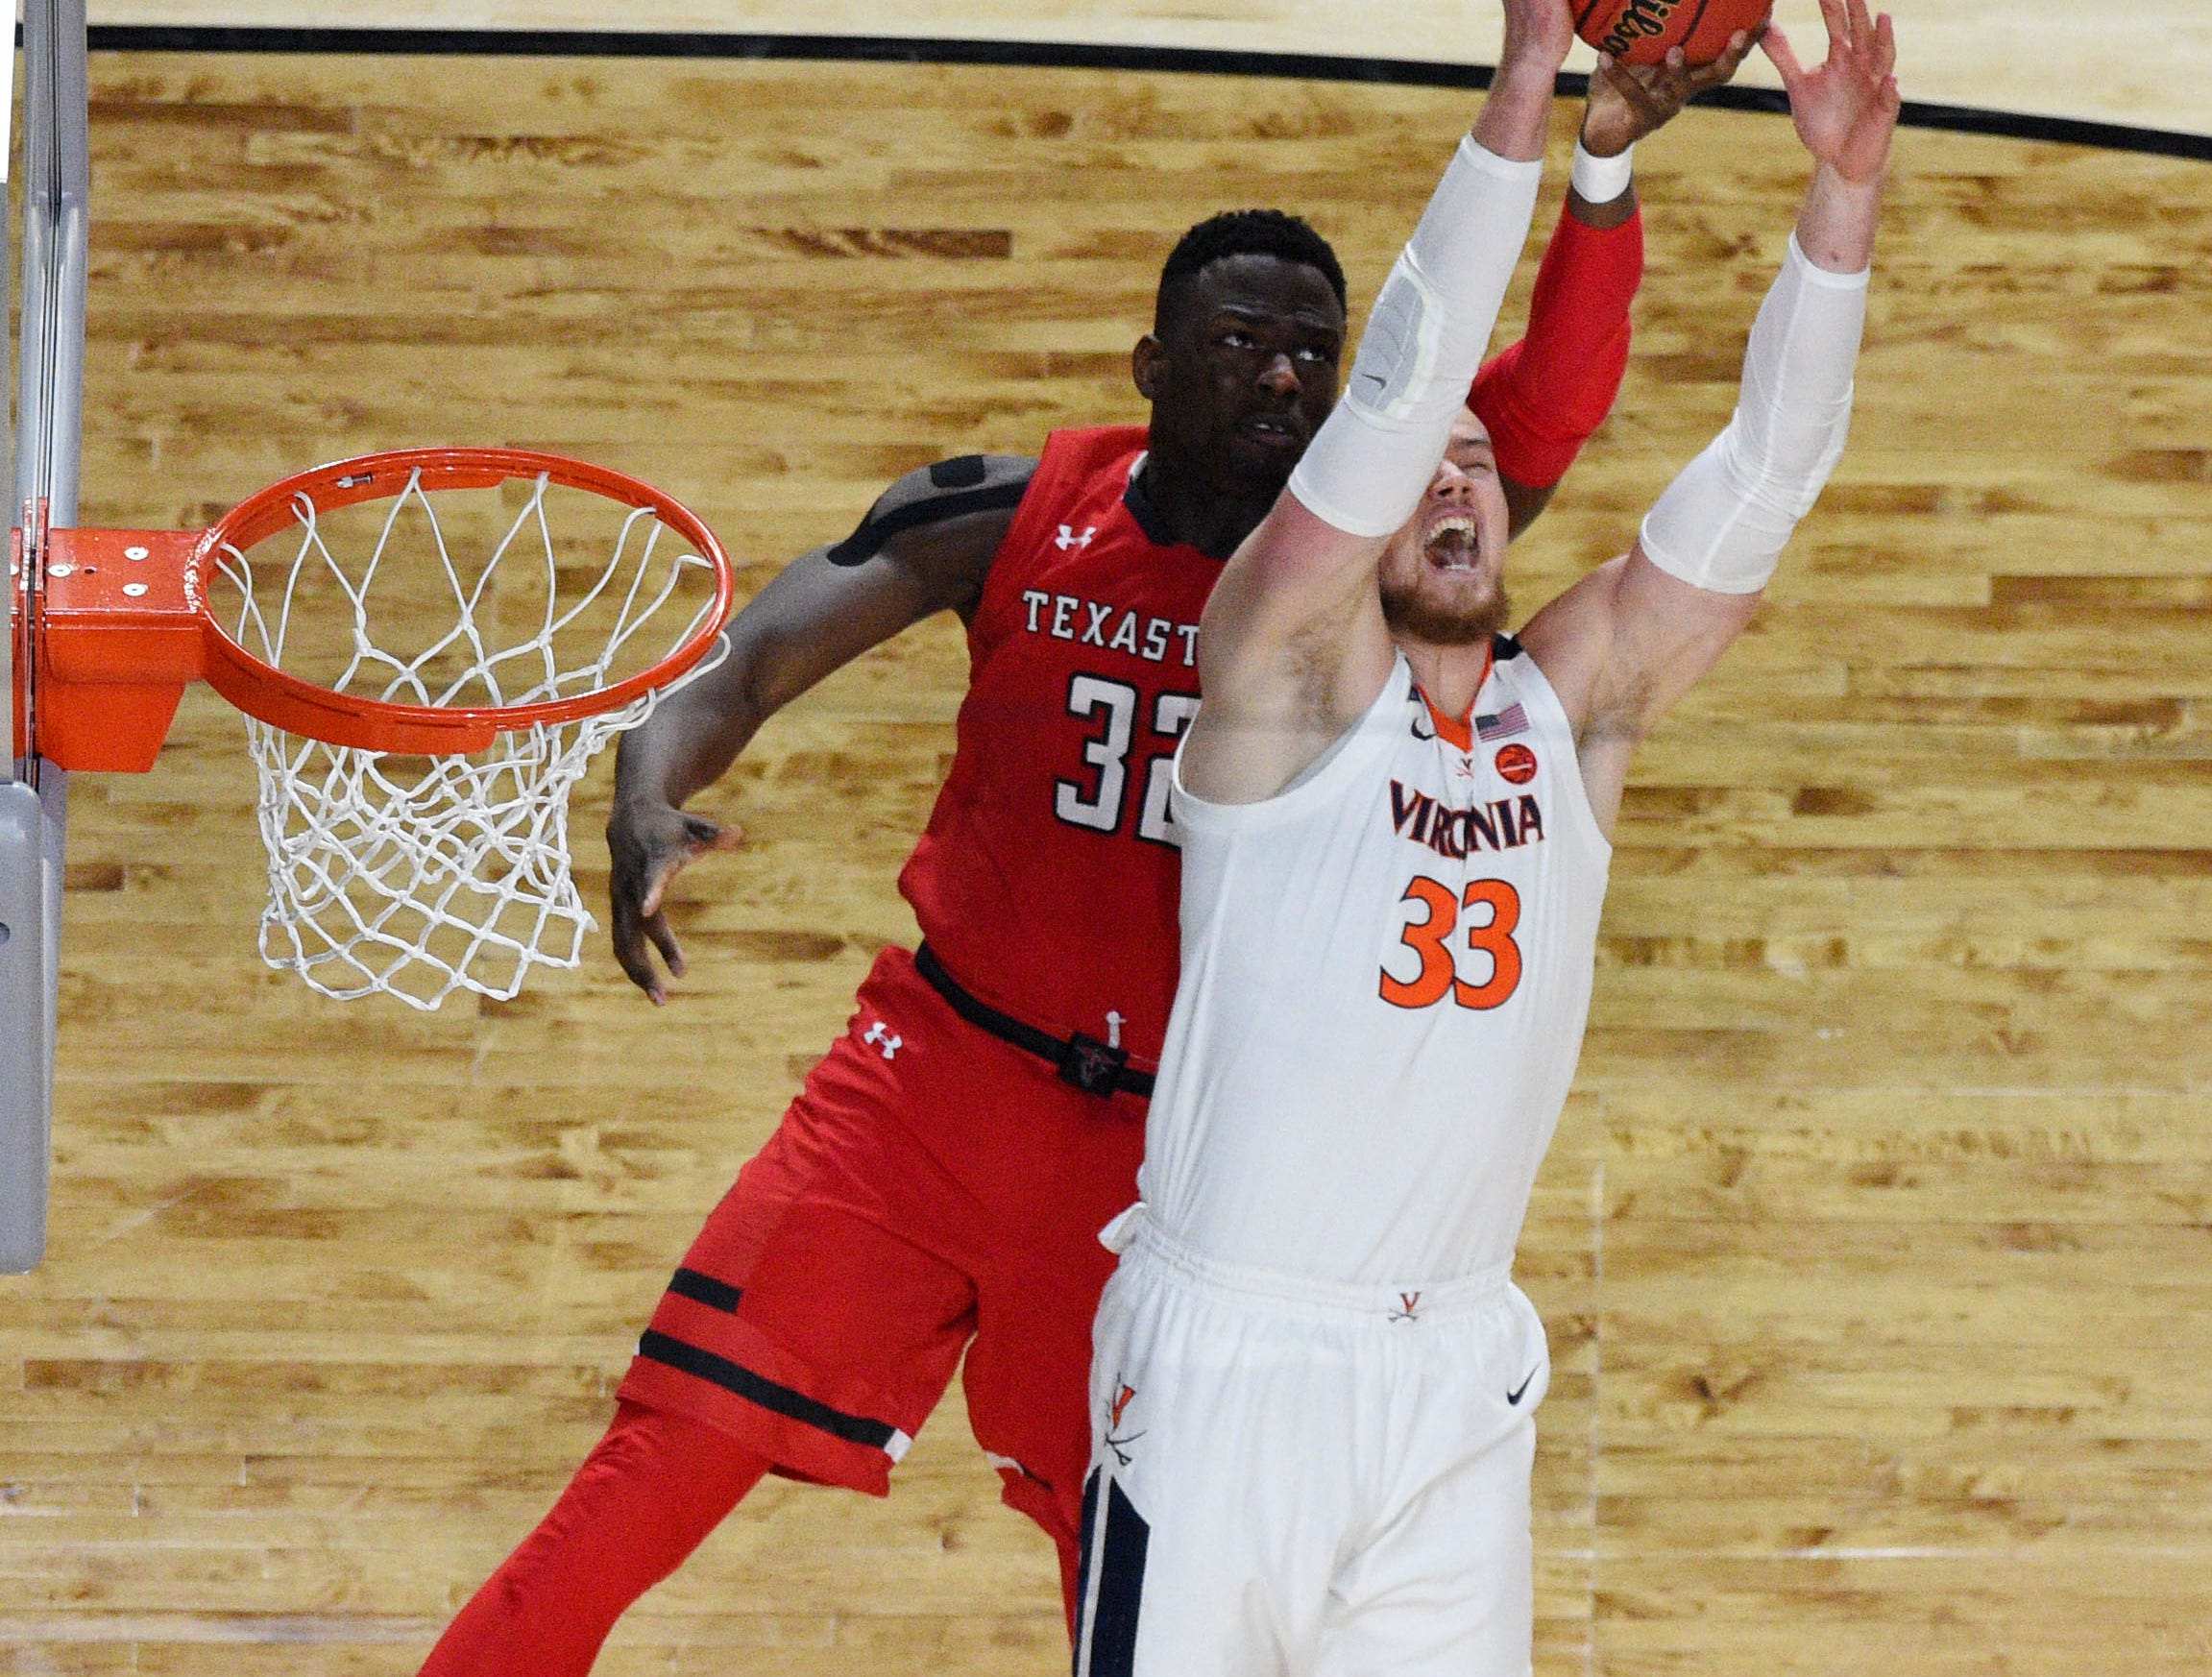 Apr 8, 2019; Minneapolis, MN, USA; Virginia Cavaliers center Jack Salt (33) battles for the ball with Texas Tech Red Raiders center Norense Odiase (32) in the first half in the championship game of the 2019 men's Final Four at US Bank Stadium. Mandatory Credit: Robert Deutsch-USA TODAY Sports